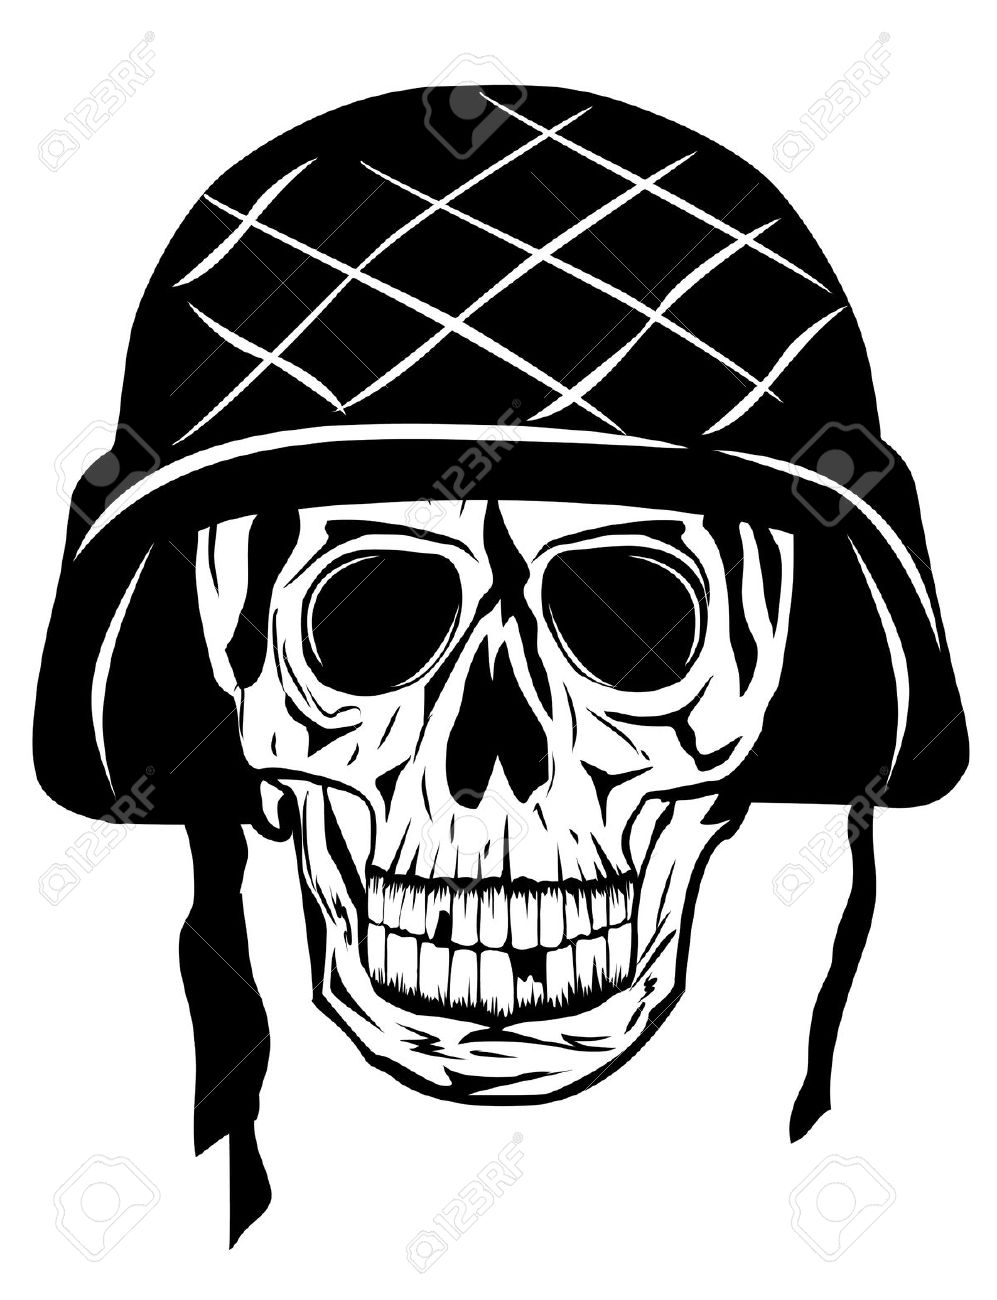 20+ Army Skull Tattoo Designs